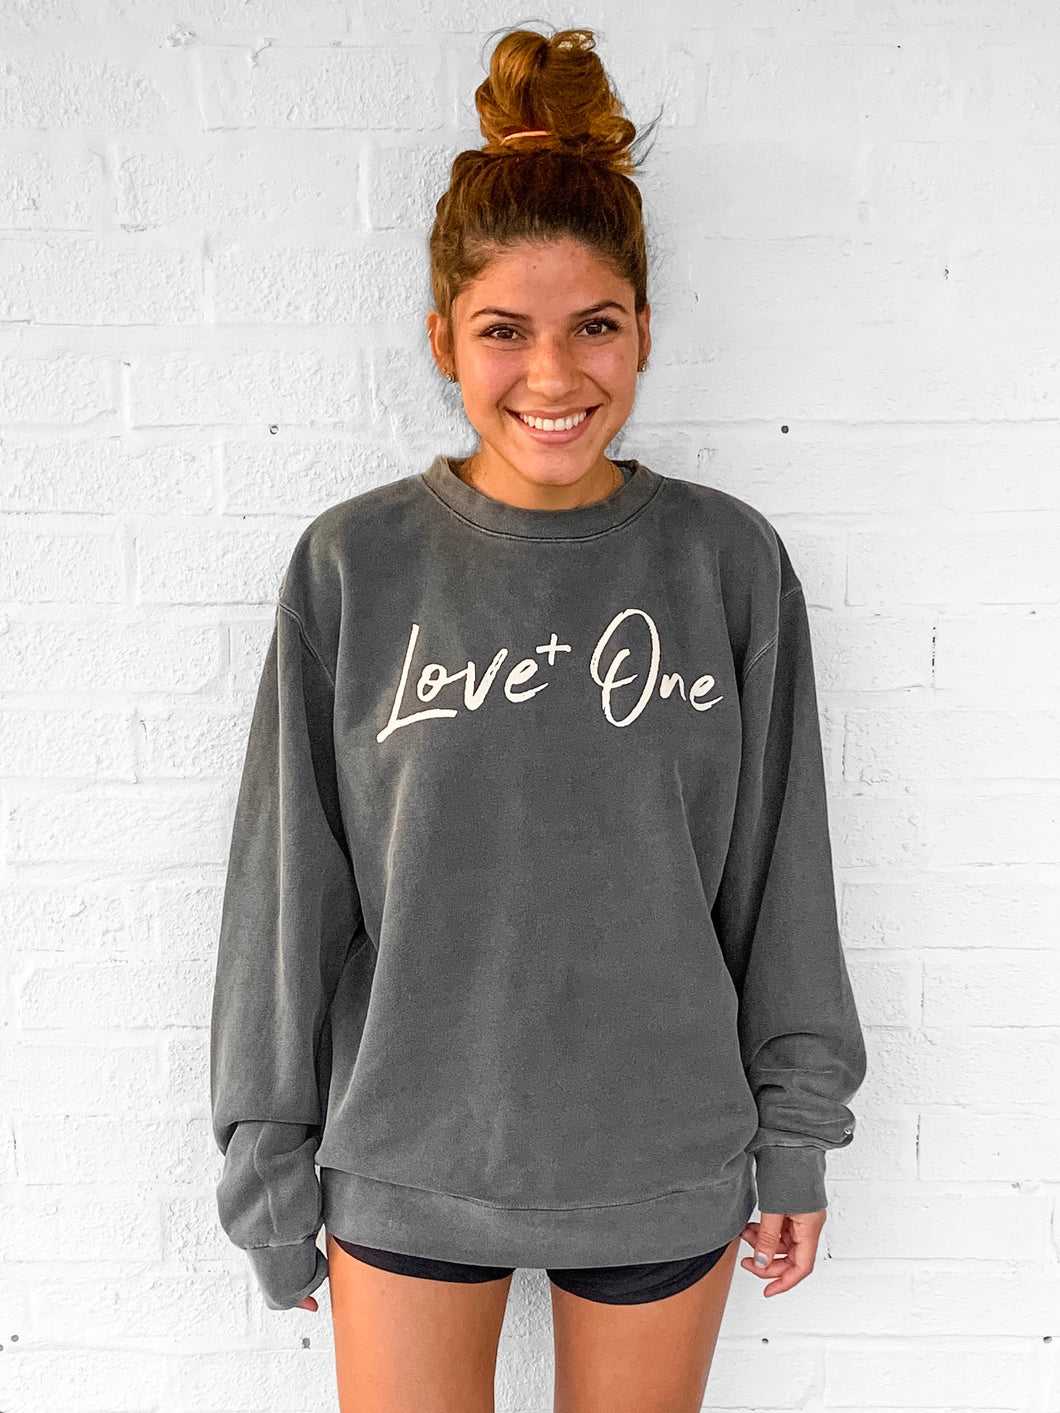 Love One Charcoal Crew Sweatshirt